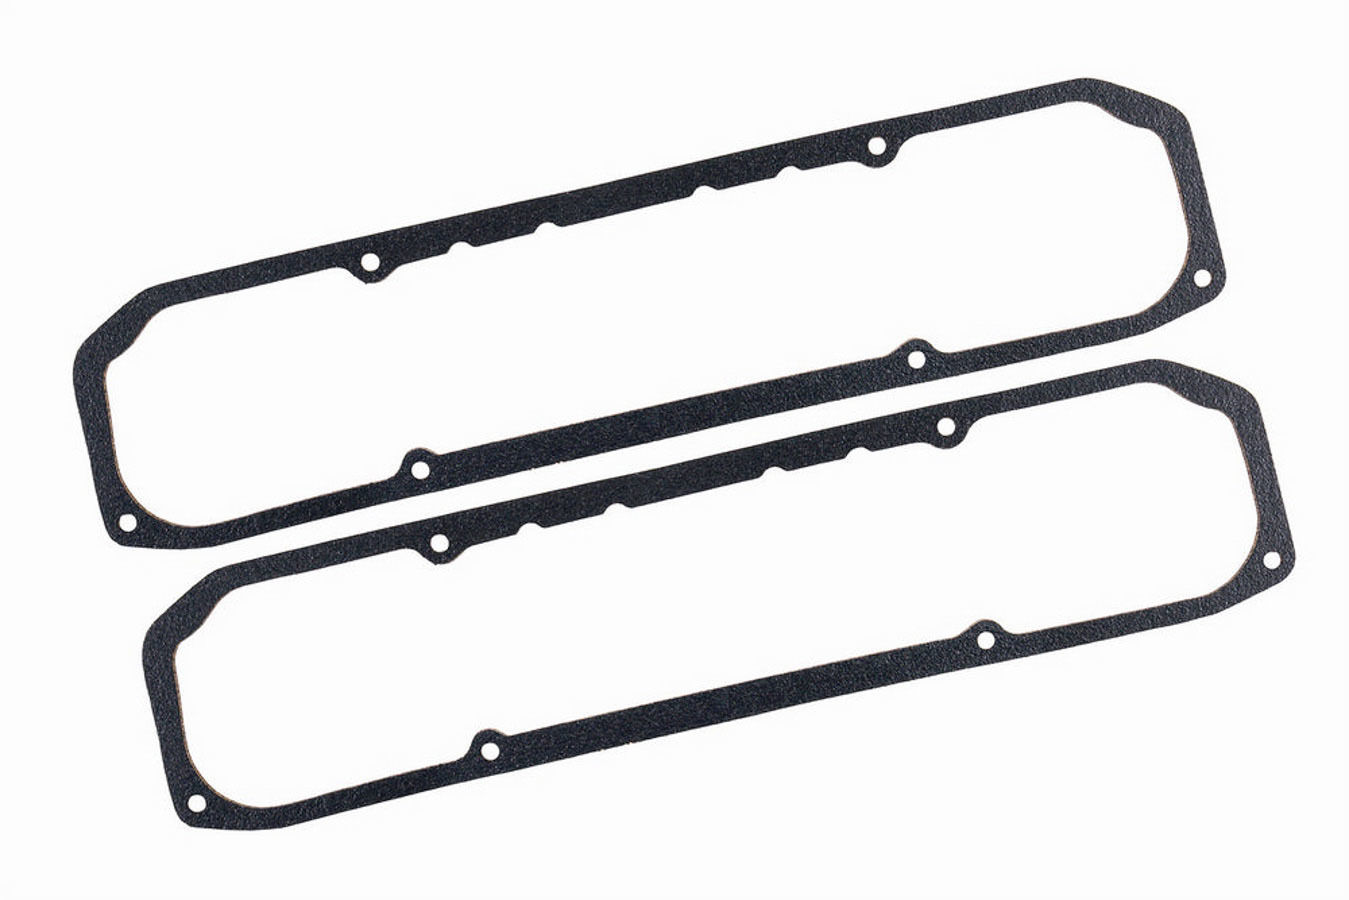 Mr Gasket 5877 Valve Cover Gasket, Ultra-Seal, 0.187 in Thick, Rubber Coated Cork / Rubber, Mopar B / RB-Series, Pair